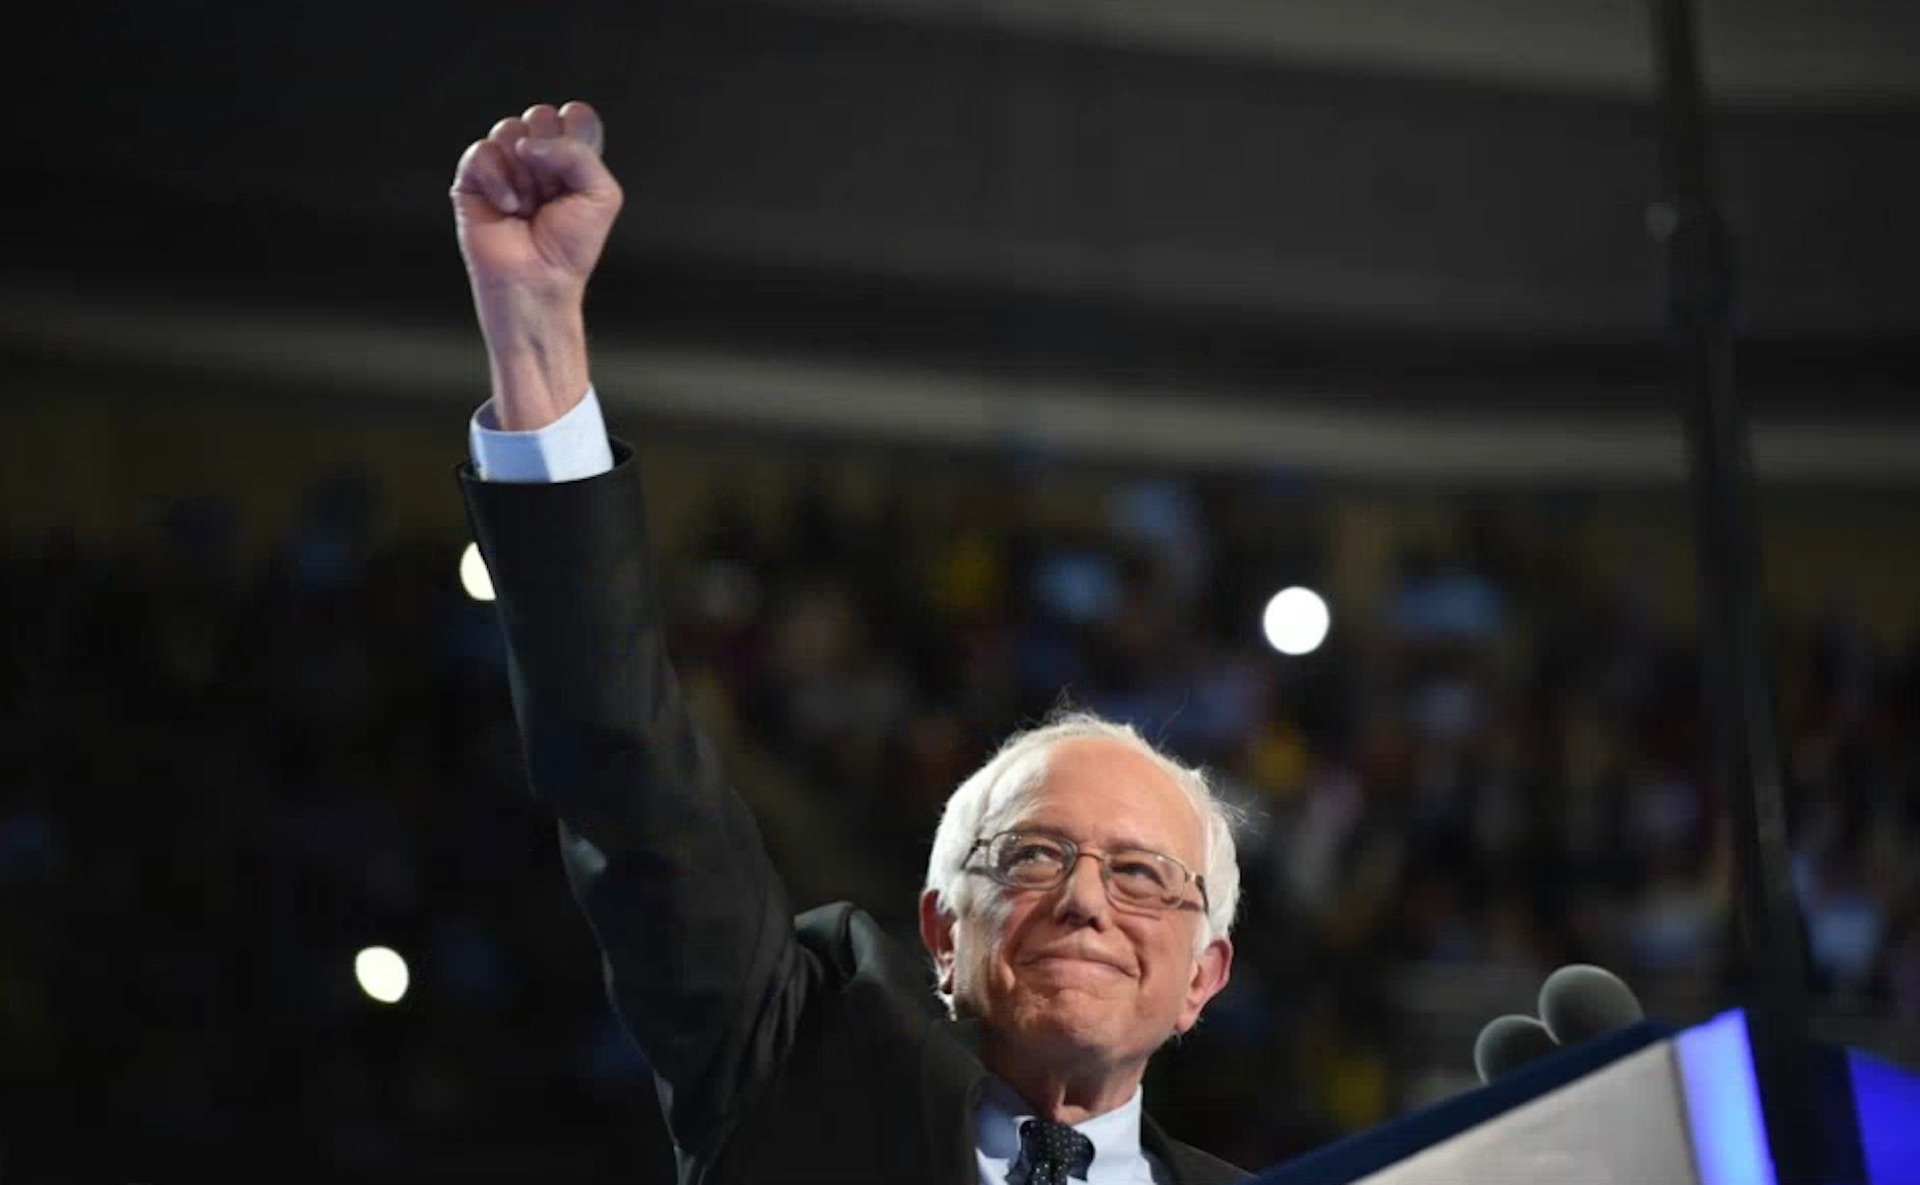 Winners and losers from the first night of the Democratic convention